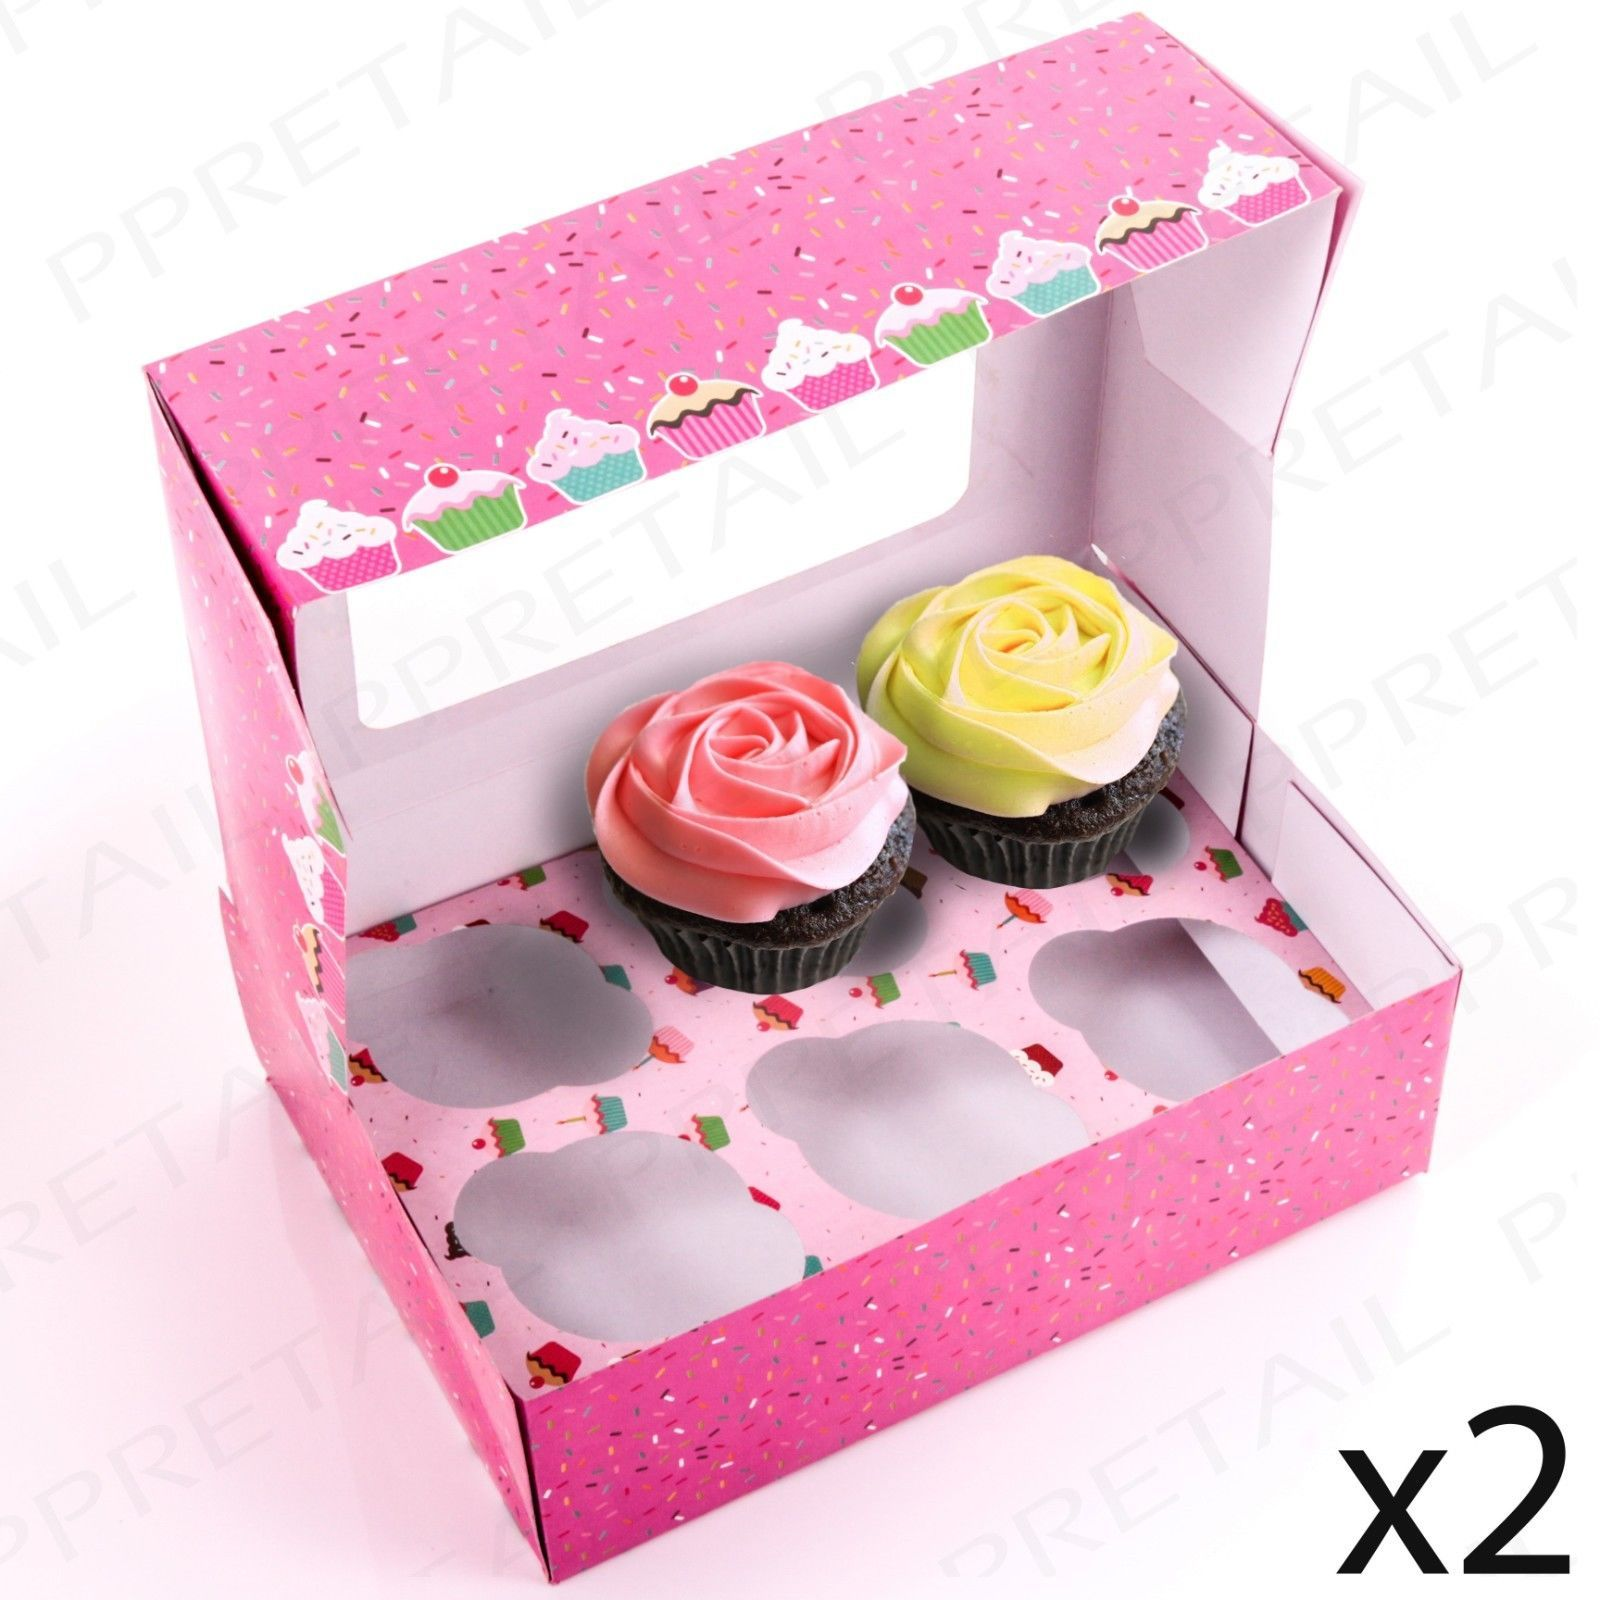 2 x deep cupcake #boxes + inserts #holders #cake/fairy/muffin/tray ...